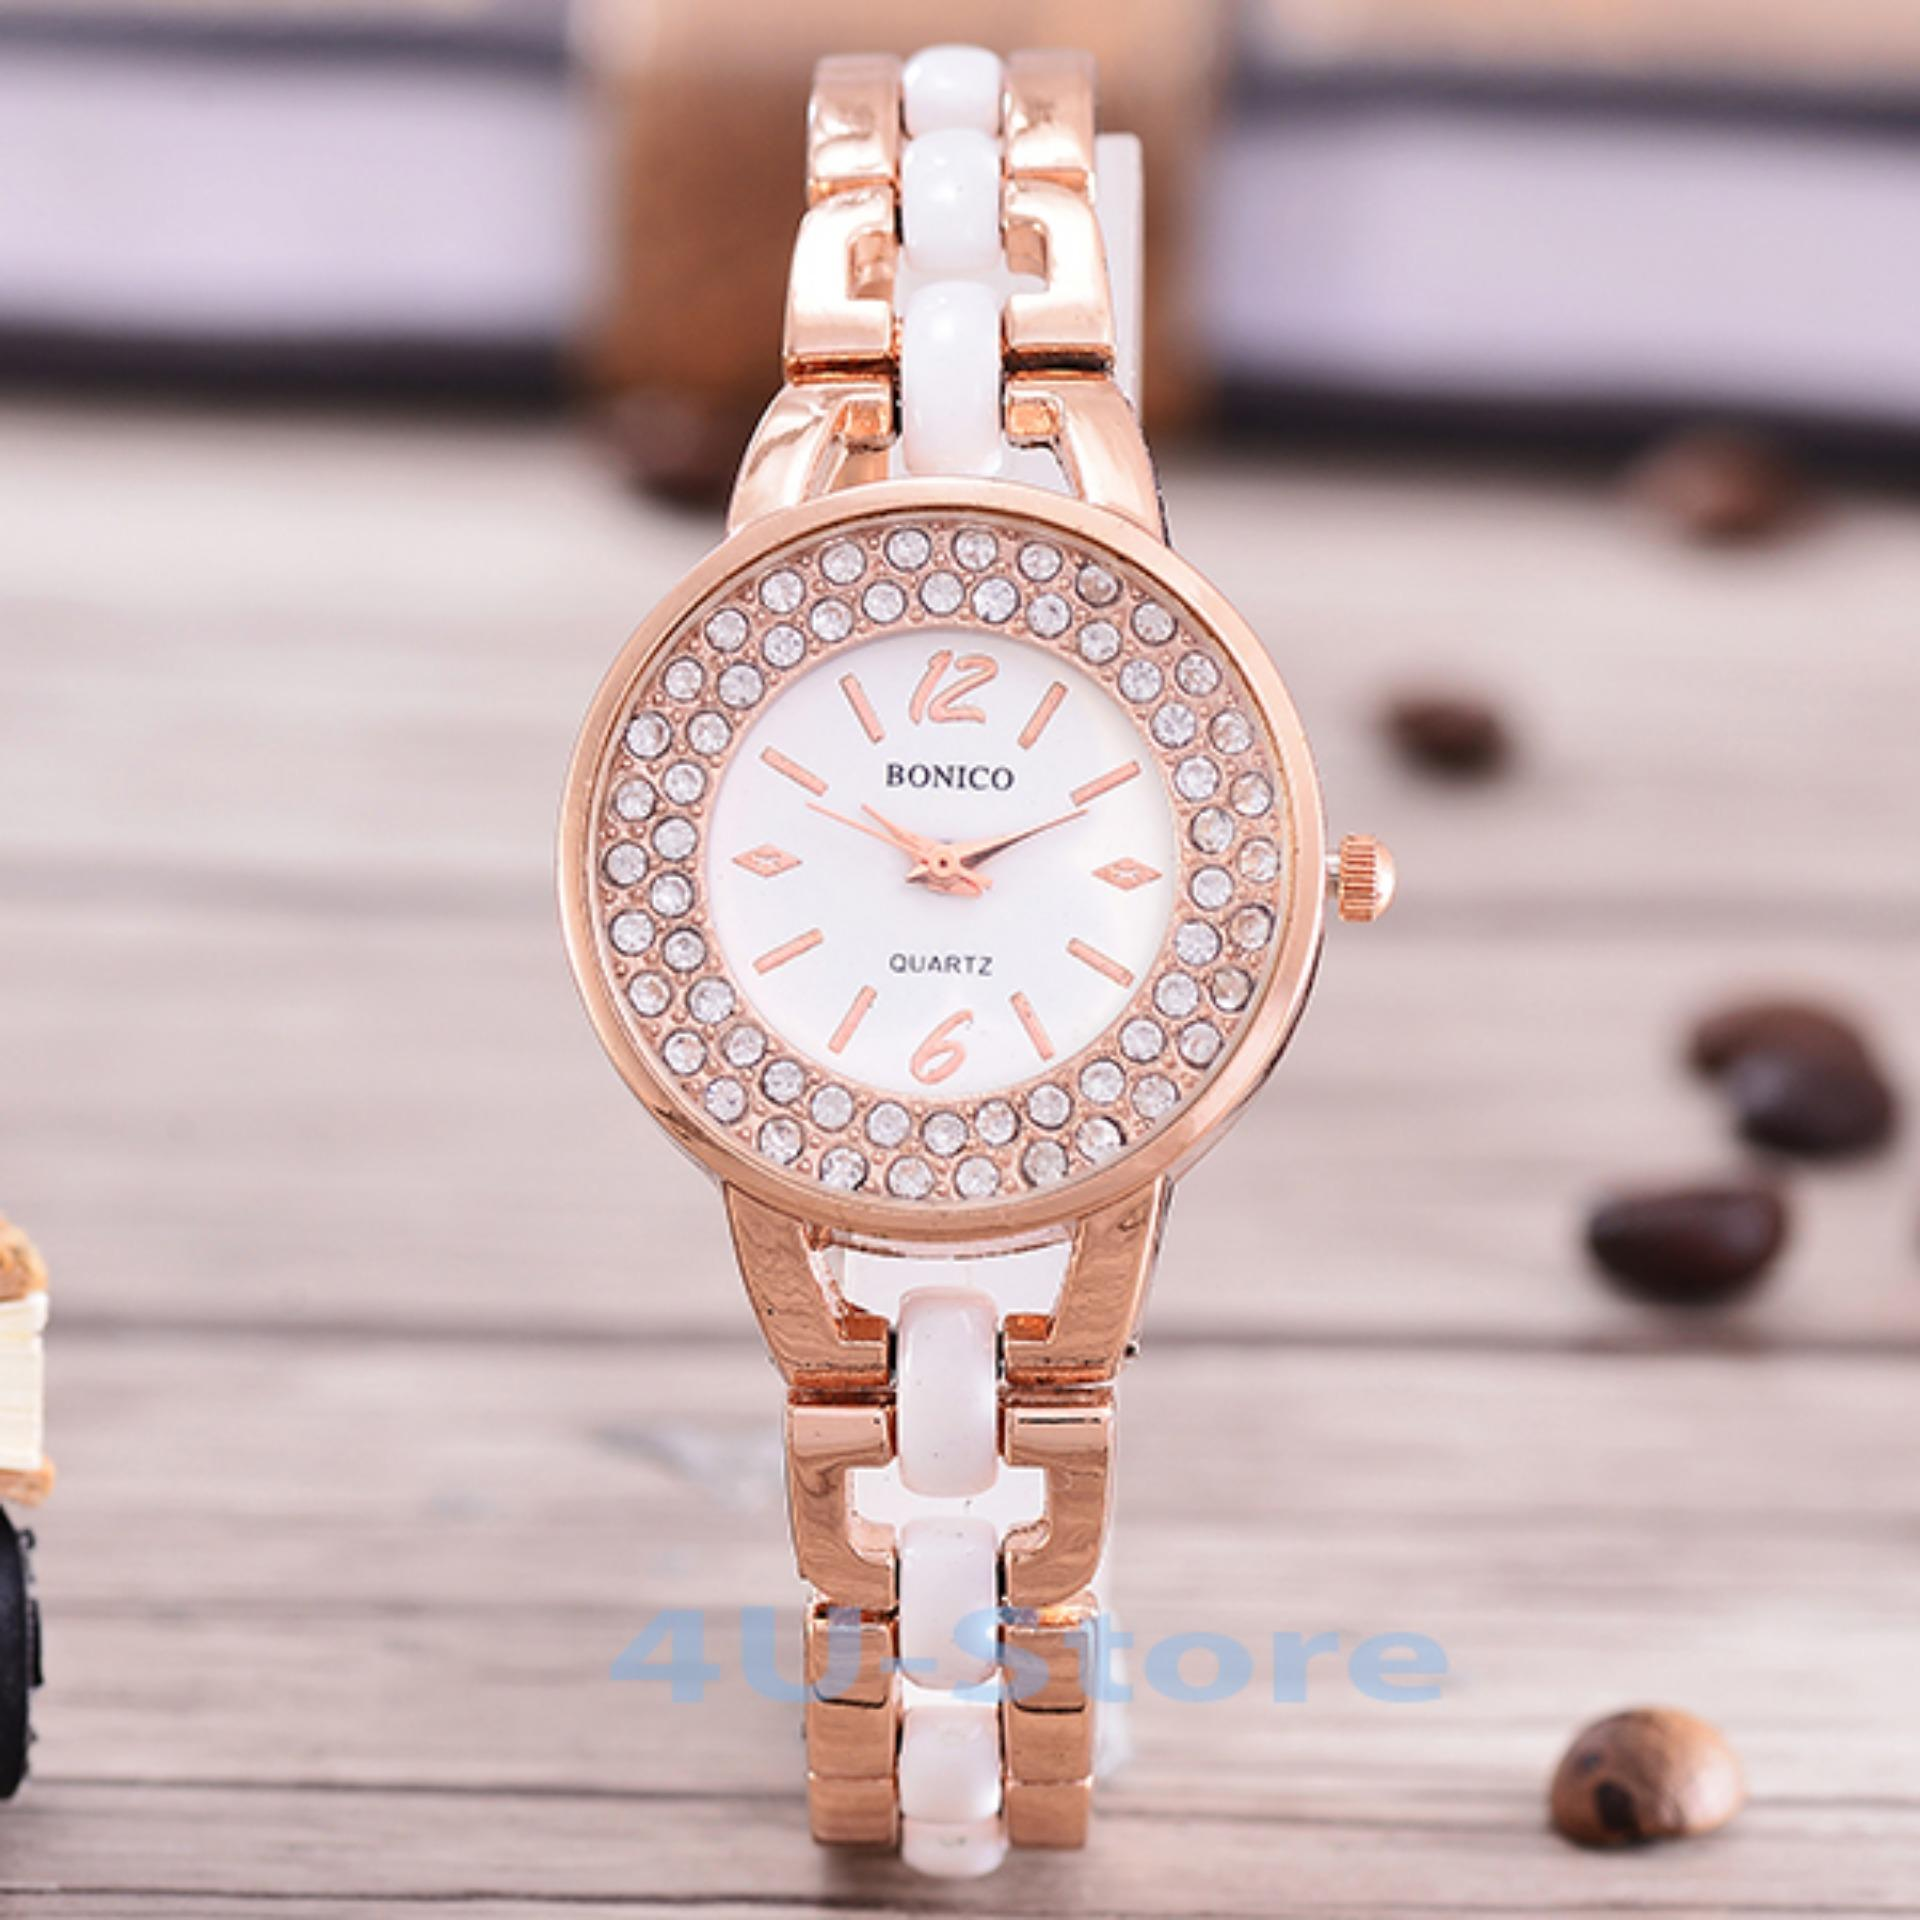 Bonico Jam Tangan Wanita Bnc 2955 Leather Strap Daftar Harga Update Indonesia Fashion 81952 Imatation Ceramic